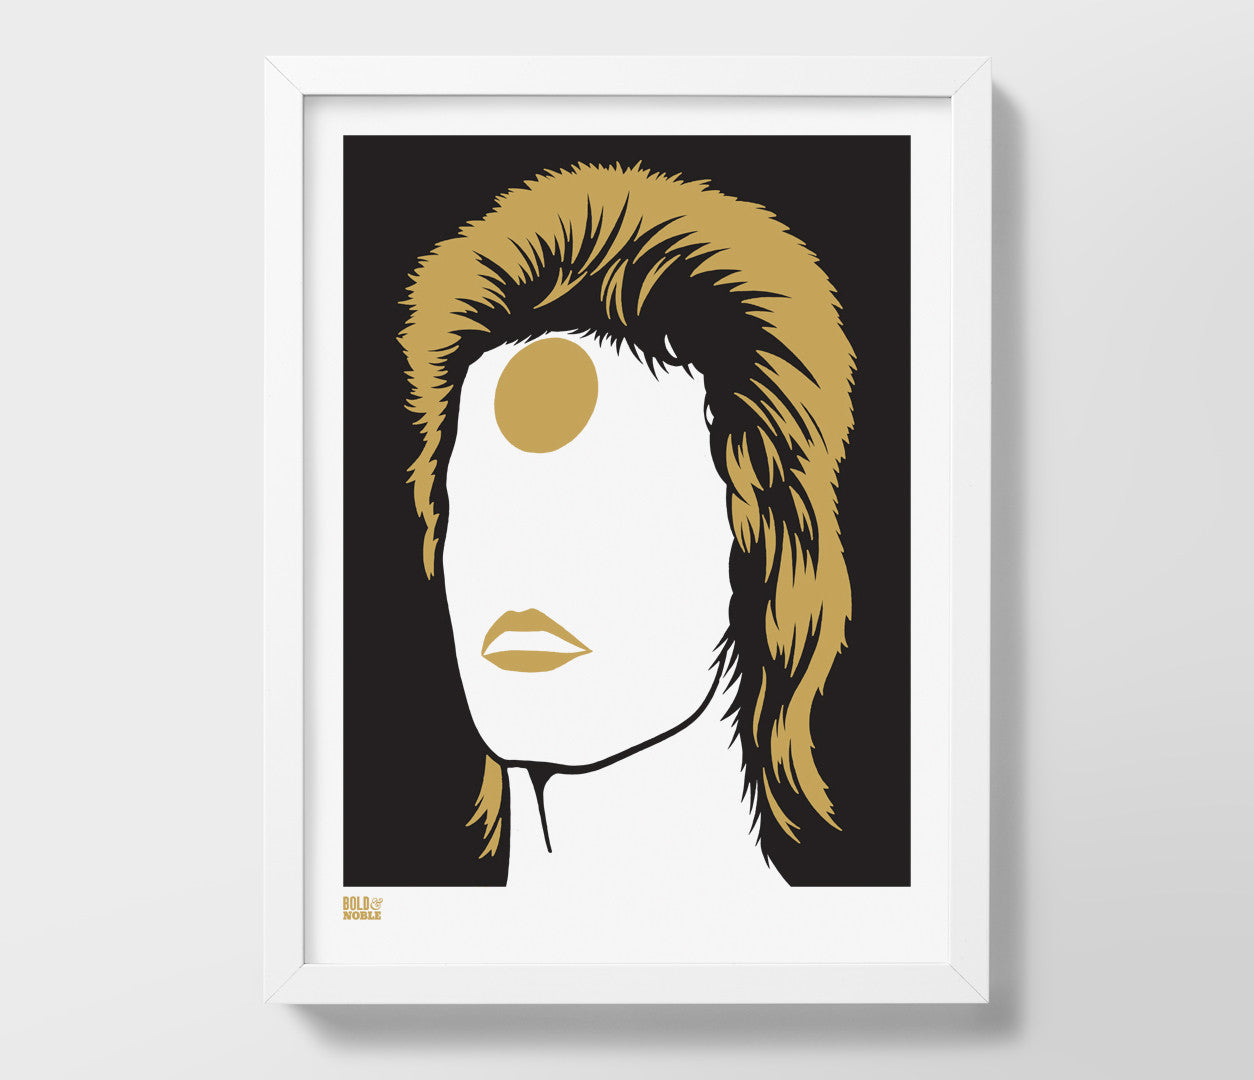 'David Bowie, Ziggy Stardust' Print in Bronze